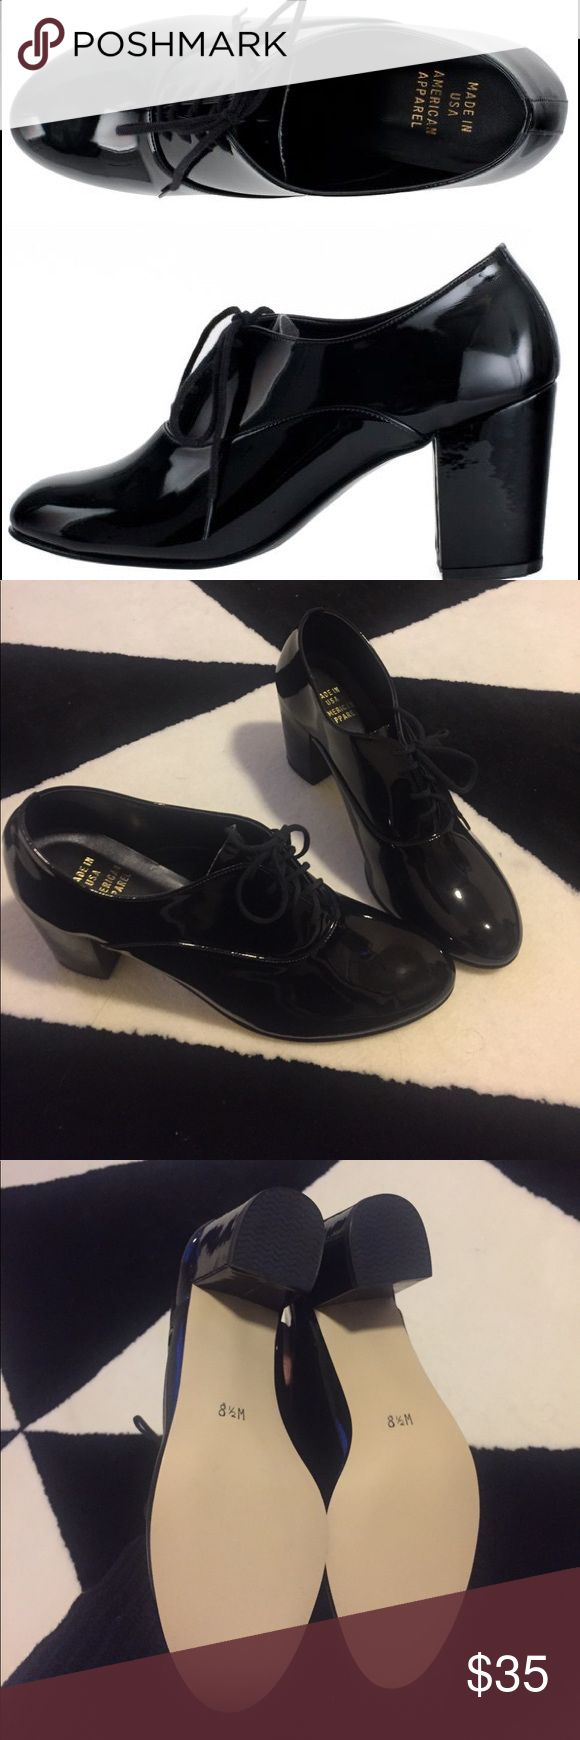 American apparel black patent leather laceup heels Brand new! Size 8.5 American Apparel Shoes Heels